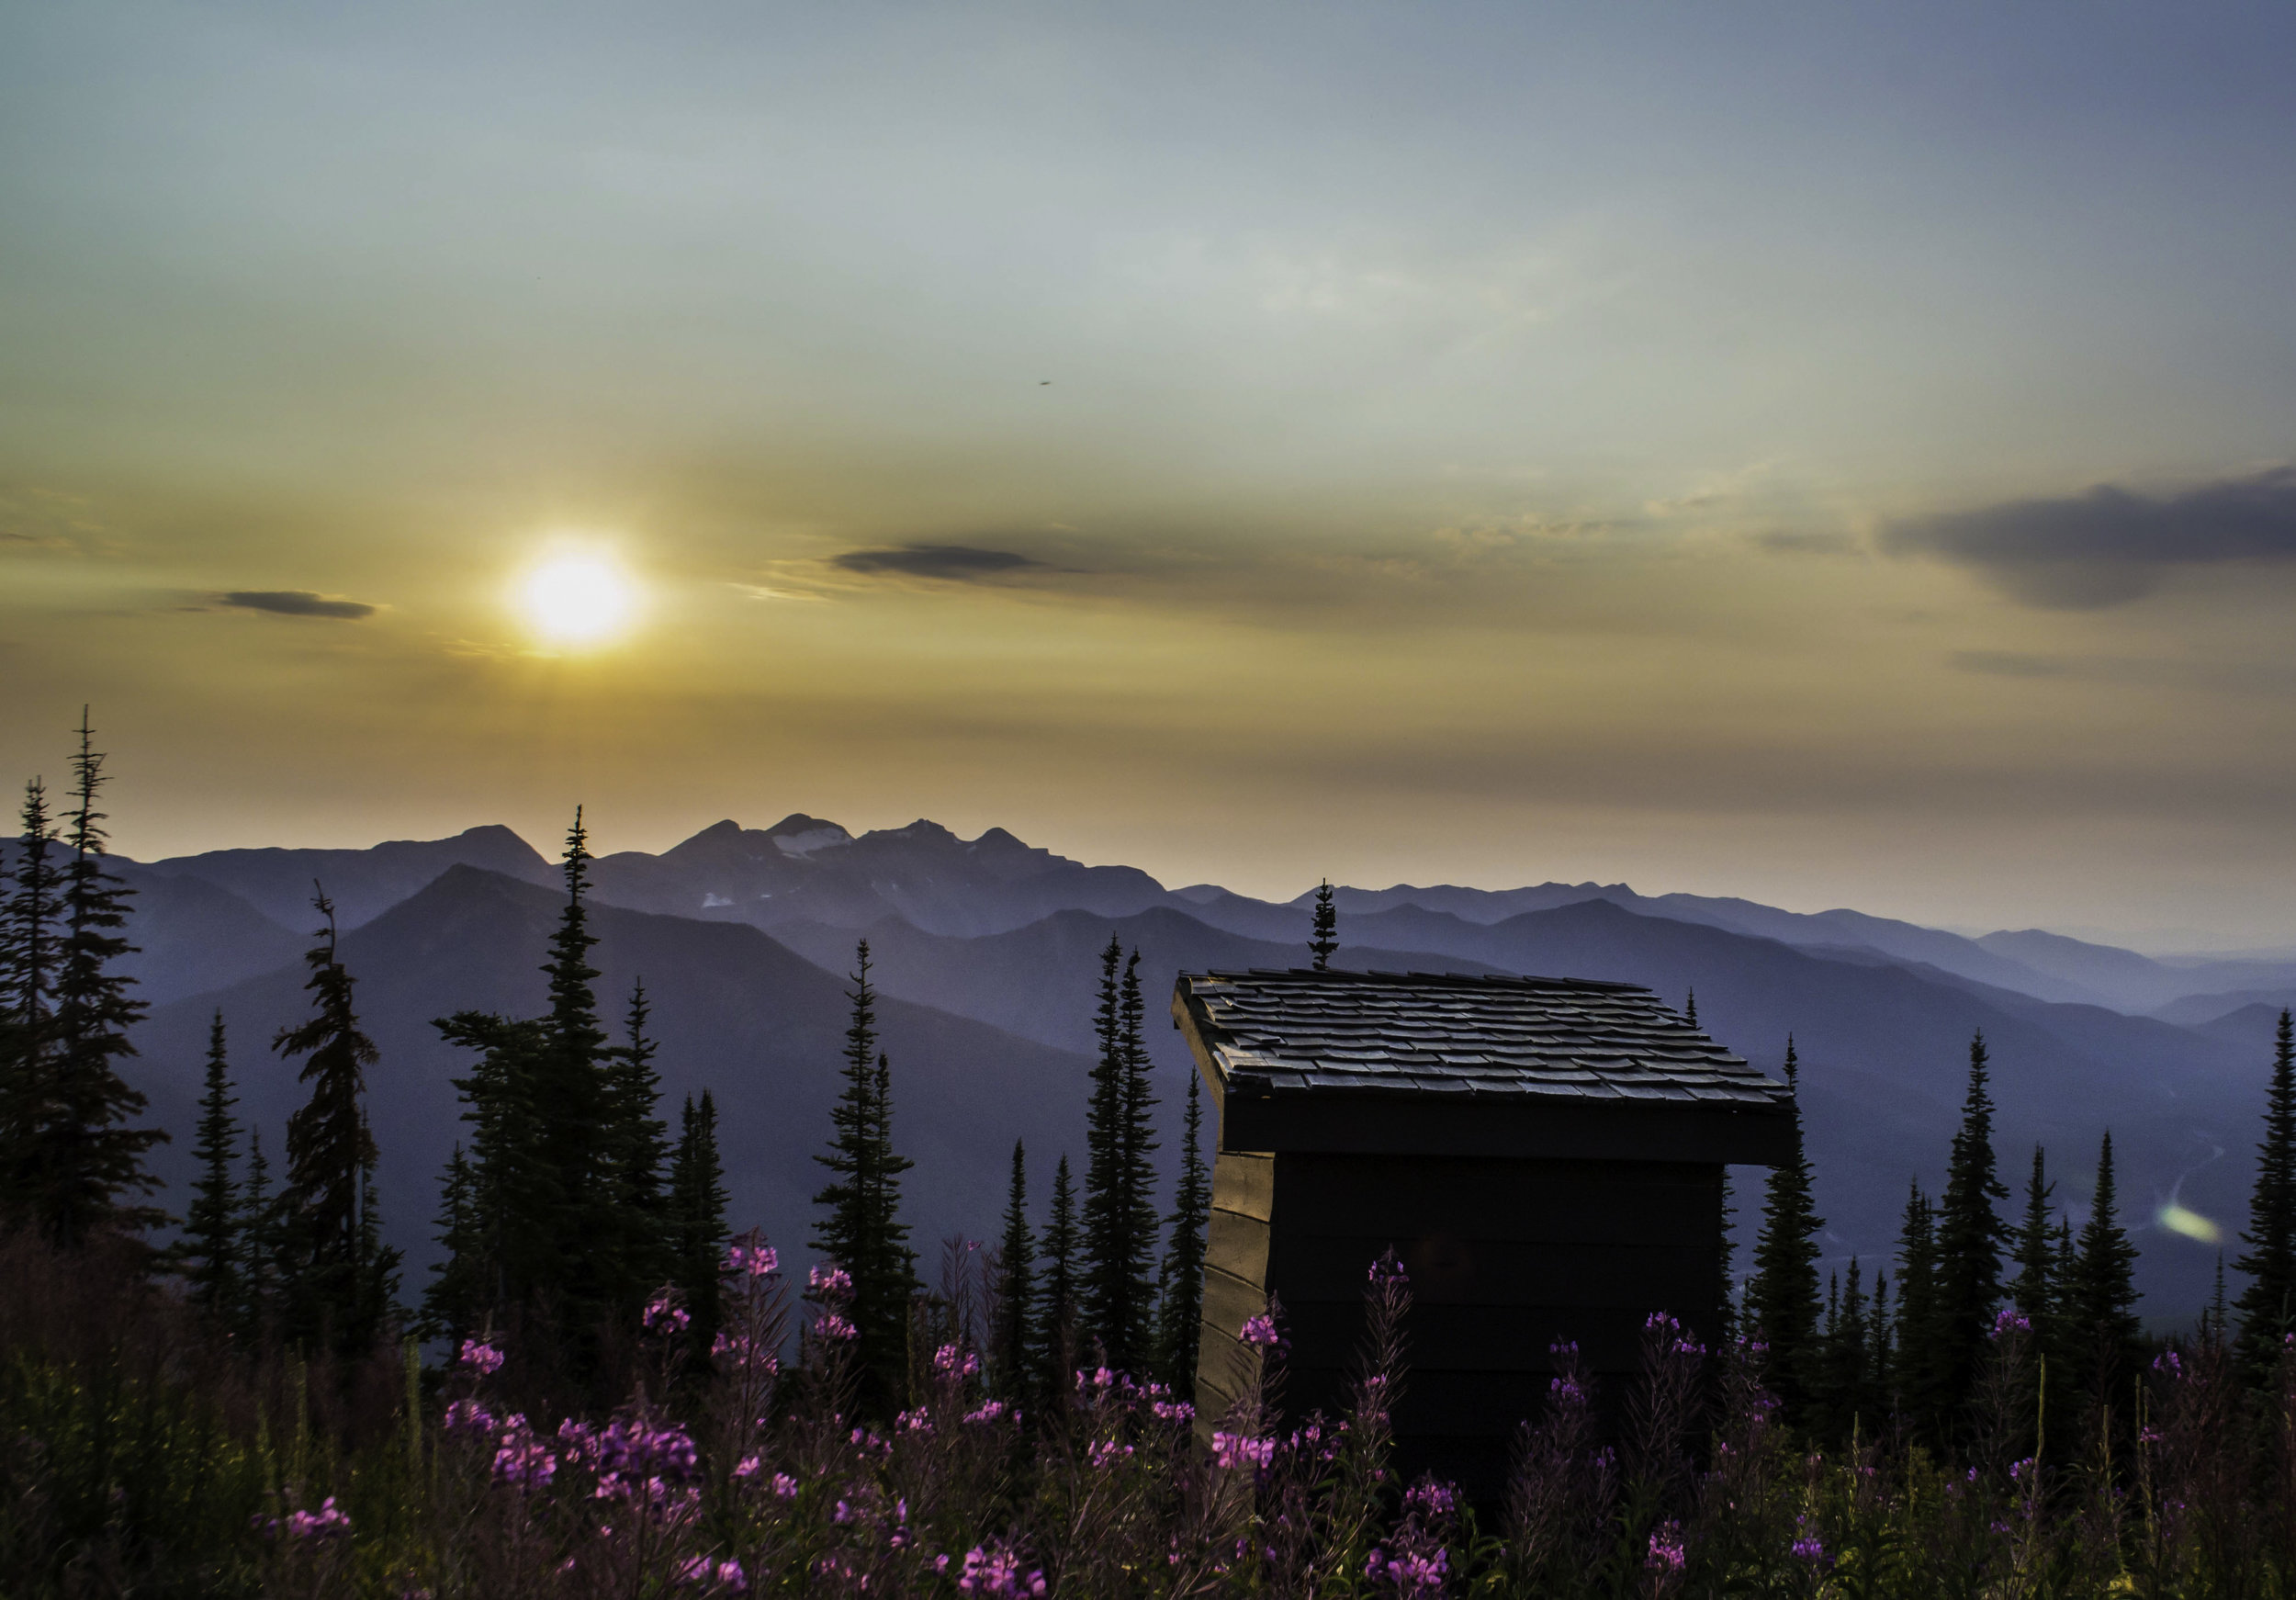 This beauty is at Scalplock lookout in Glacier NP. It's surrounded by ample huckleberries, which is nice if you need a bump of fiber to help things move. The views are spectacular and its a long but easy hike to get here. RATING: ★★★★★, Location 48.300555,113.575068